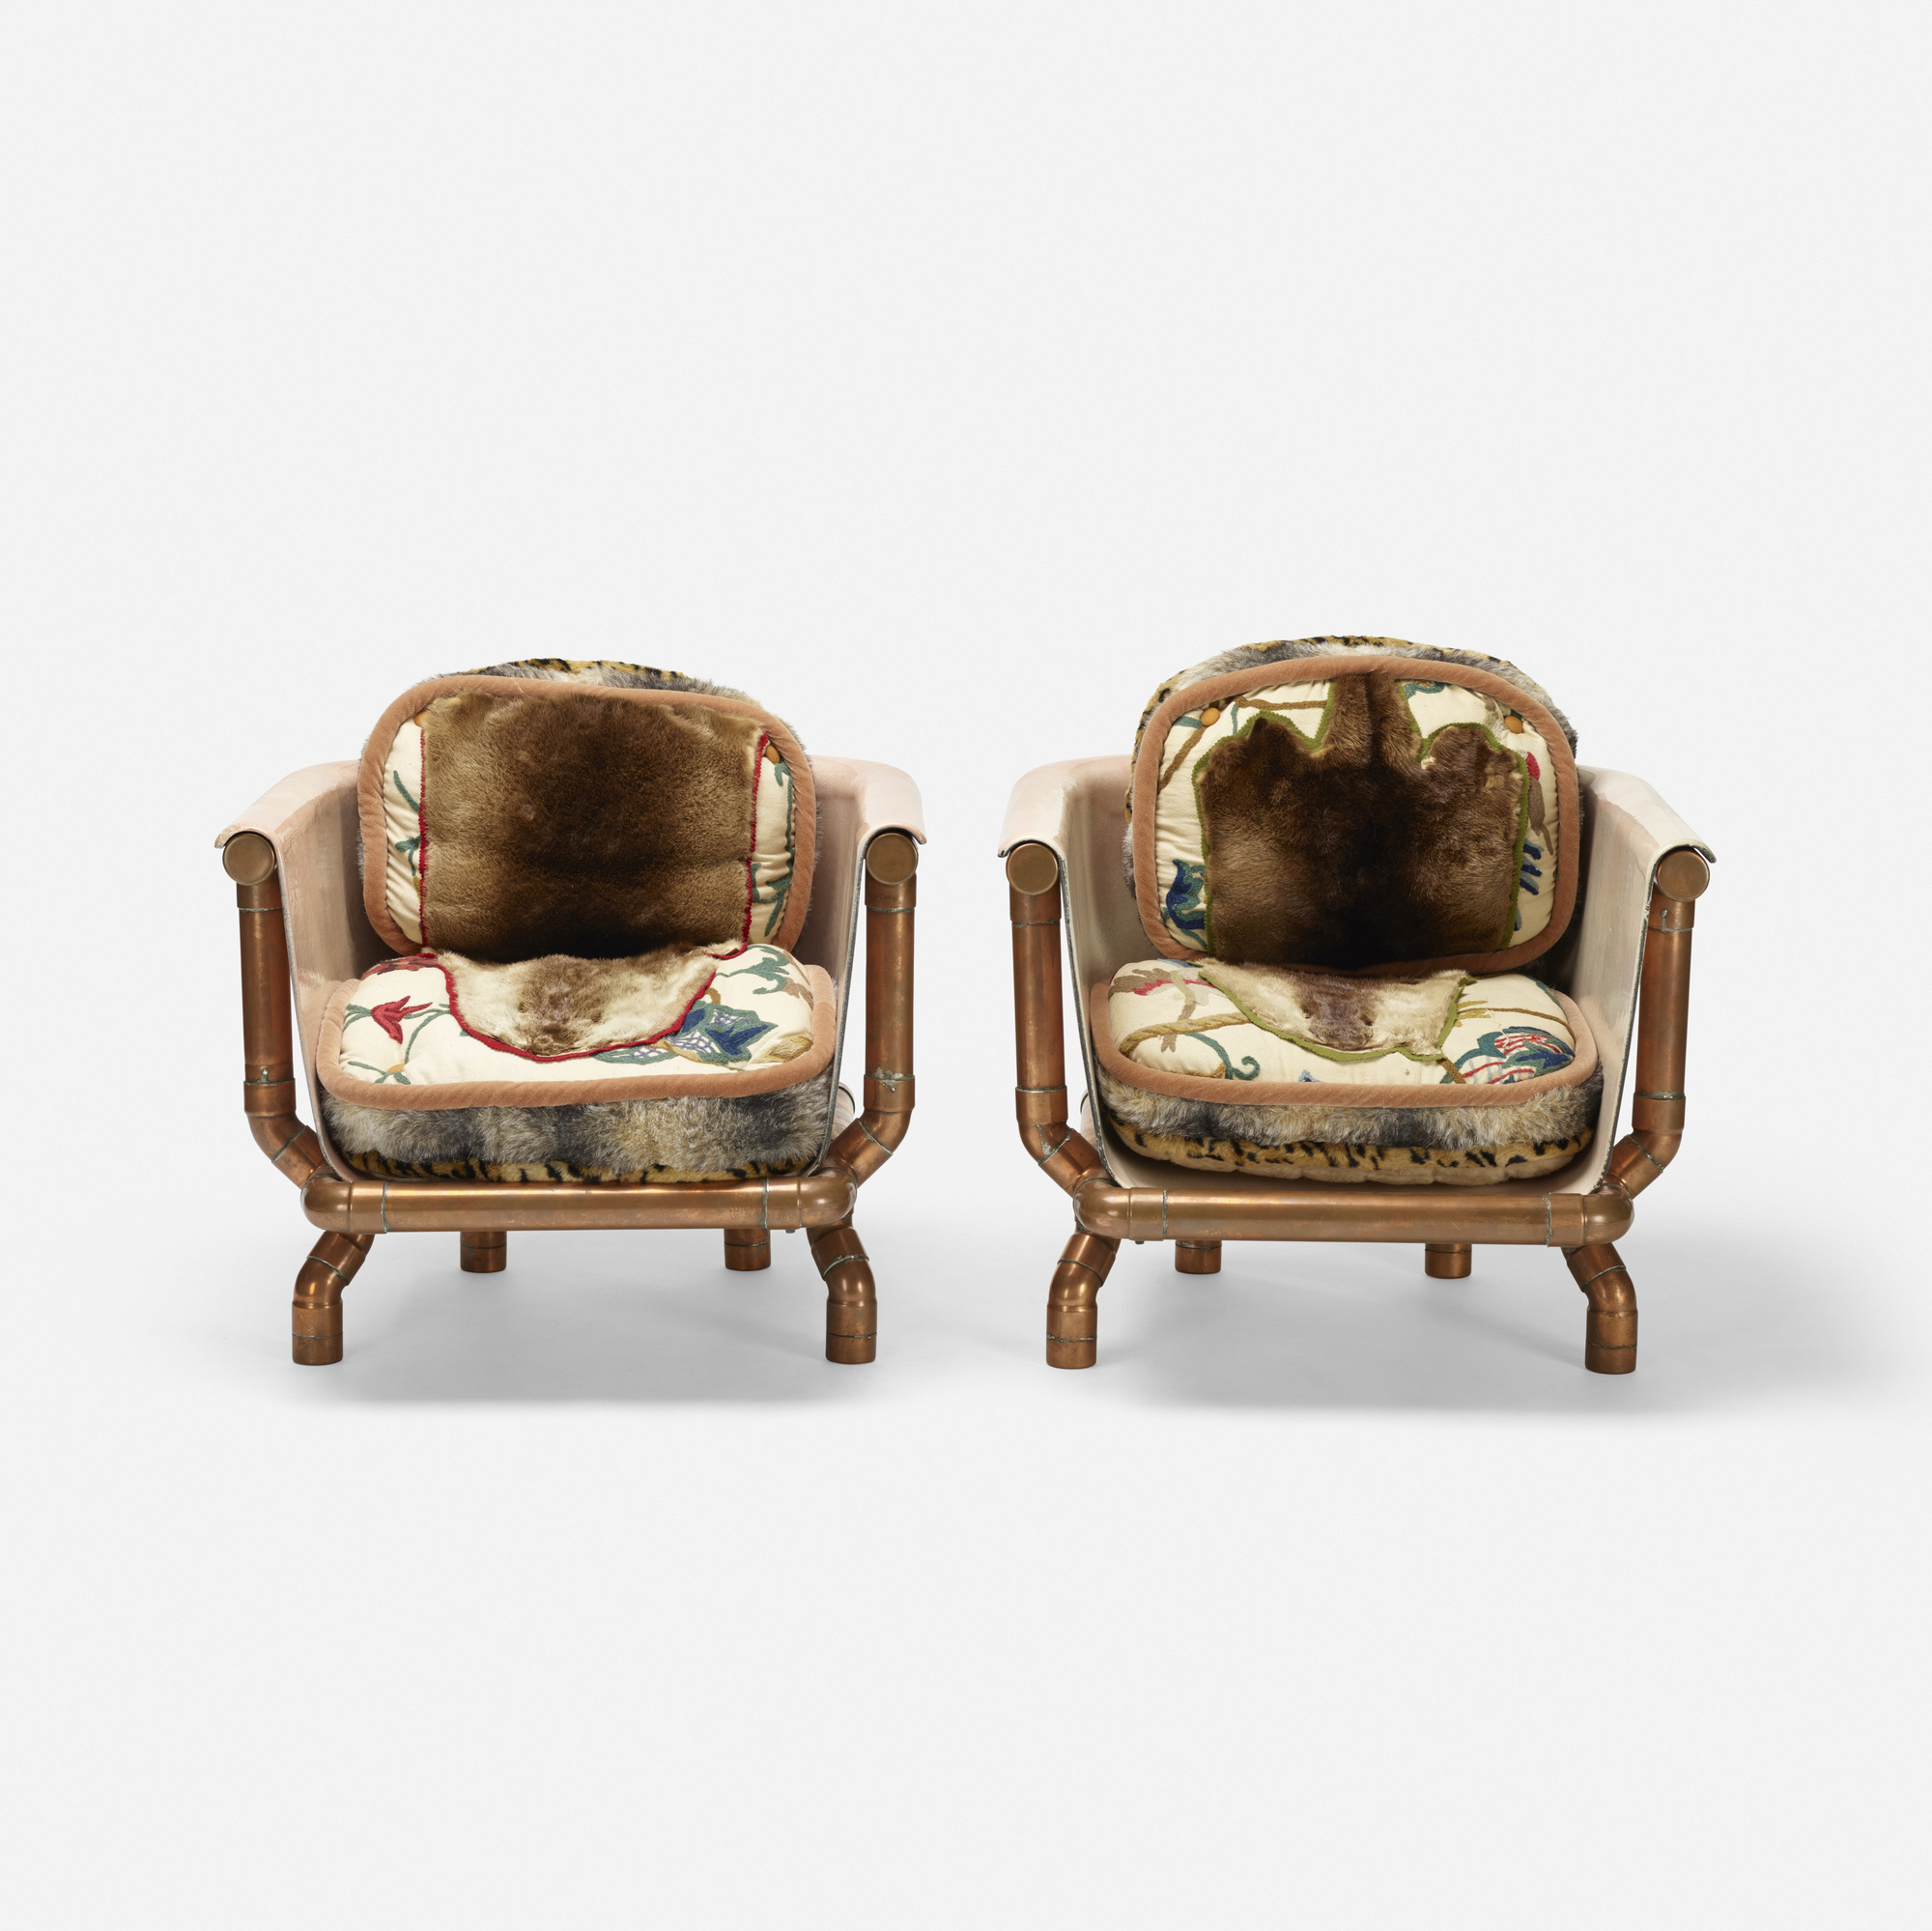 125: Joel Otterson / Endangered Species Chairs, pair (2 of 2)